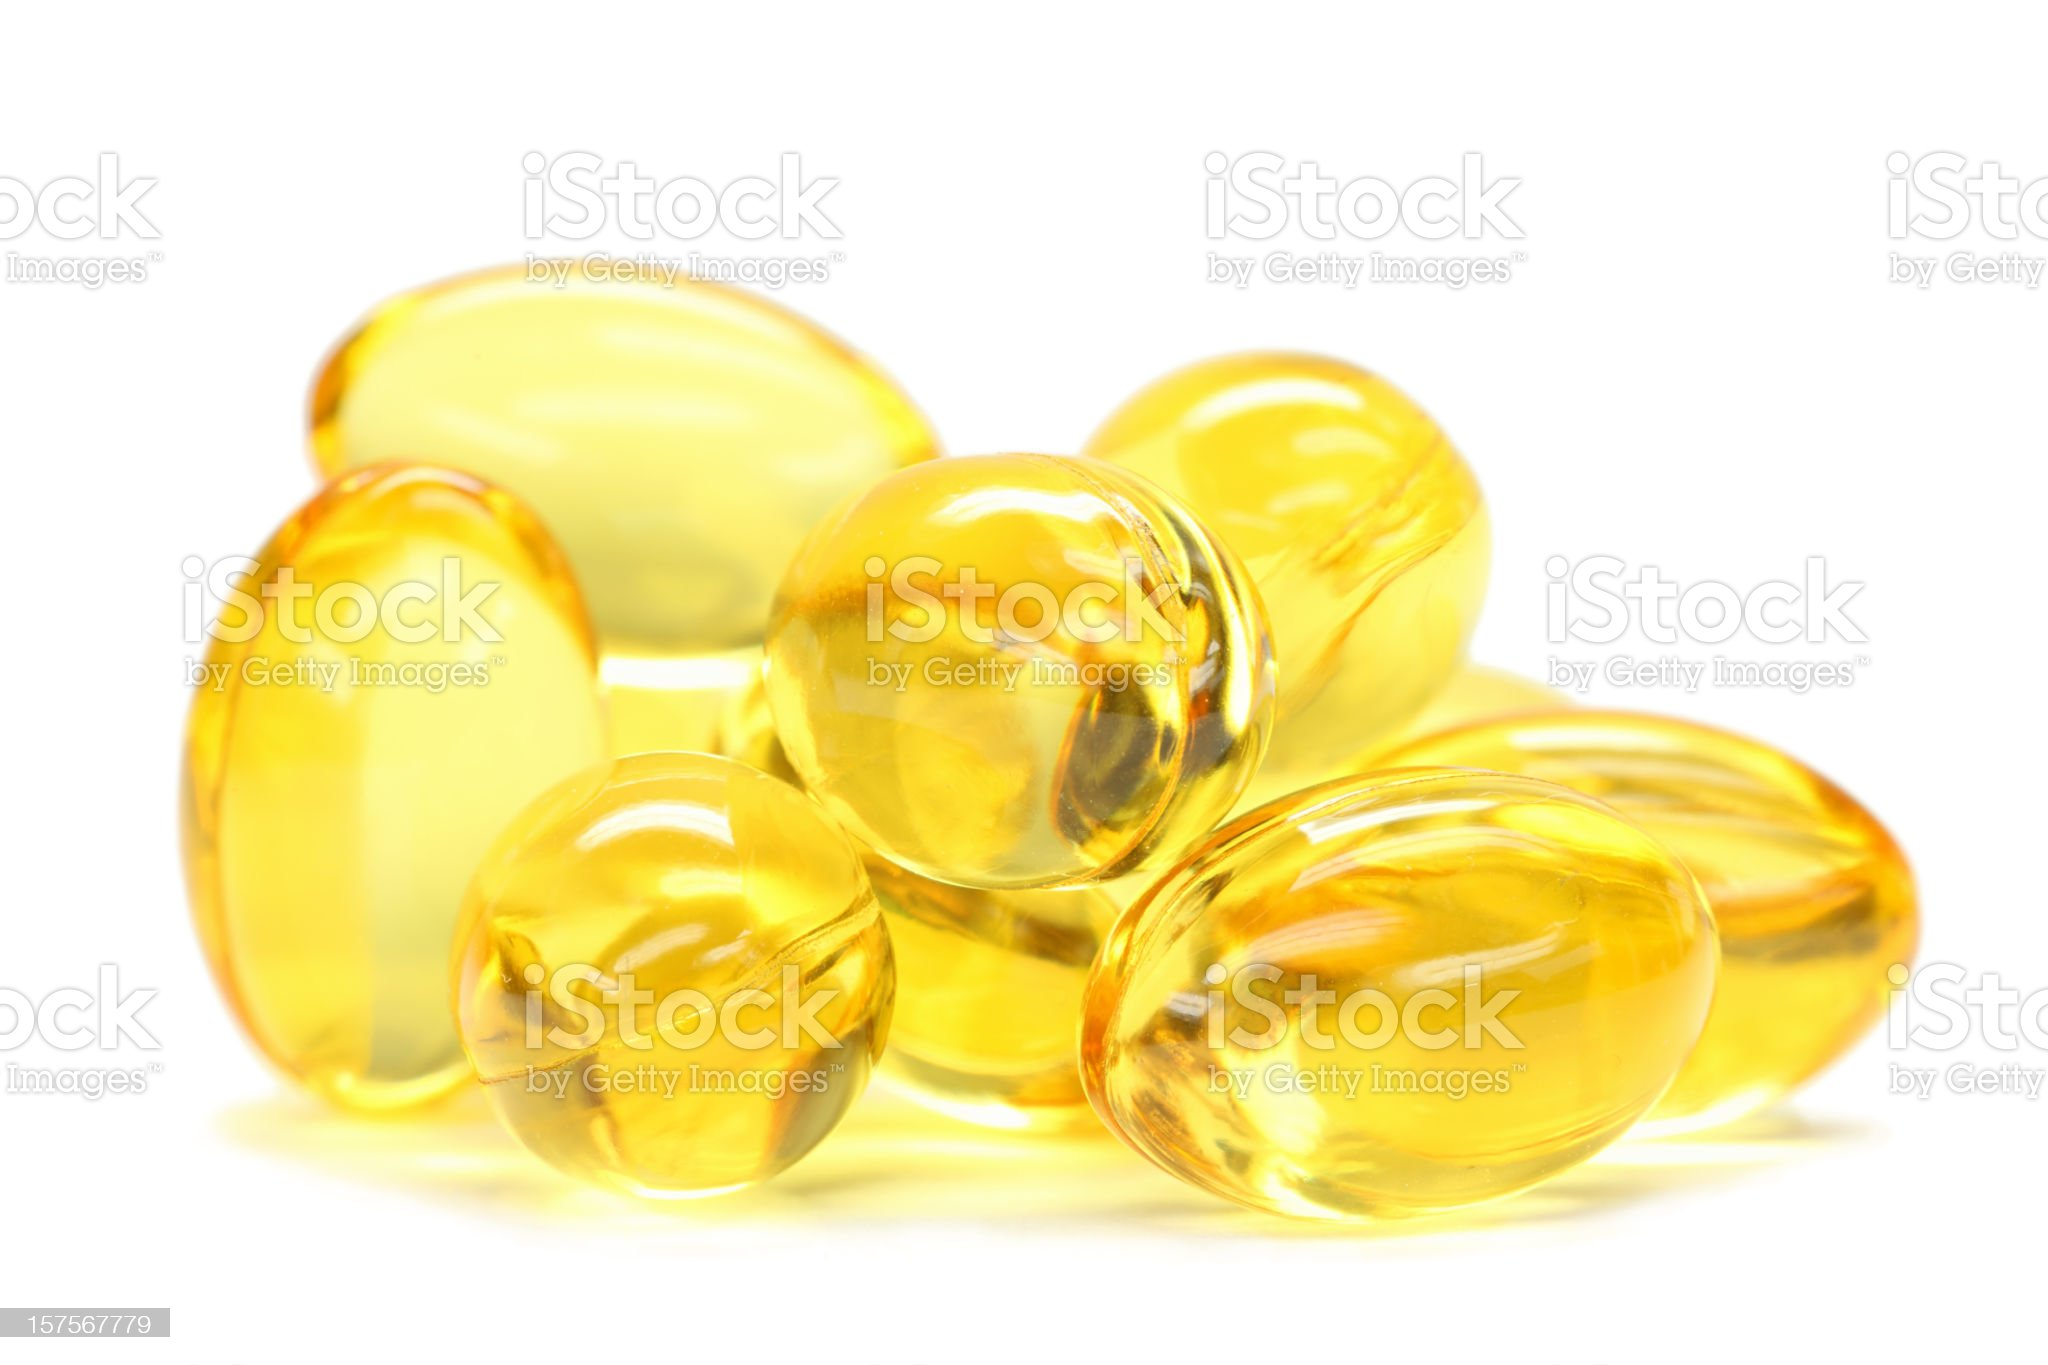 fish oil capsules isolated on white royalty-free stock photo